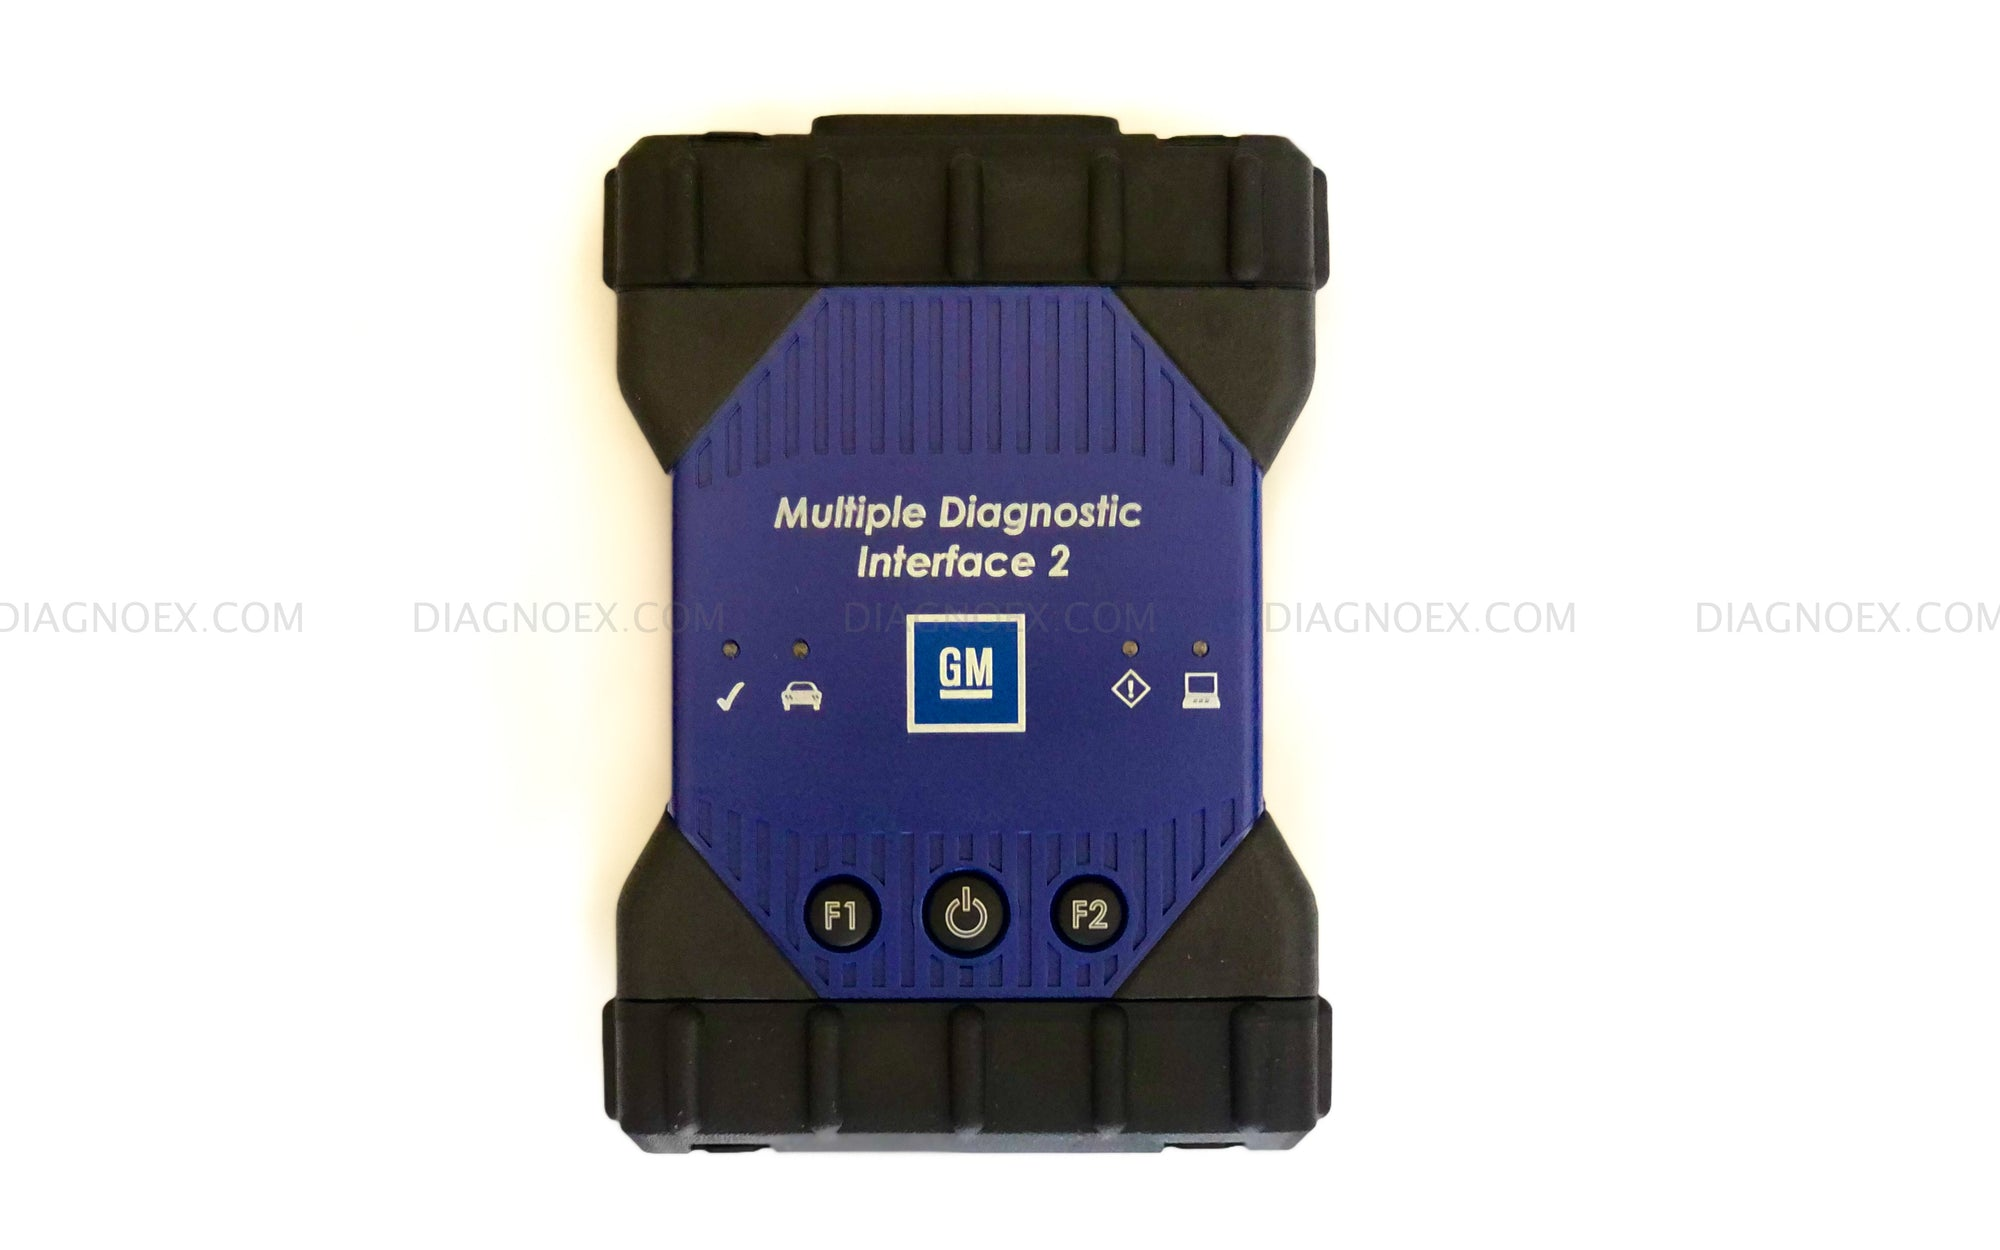 GM MDI 2 Global Diagnostic Interface ACDELCO EL-52100-AM Tool